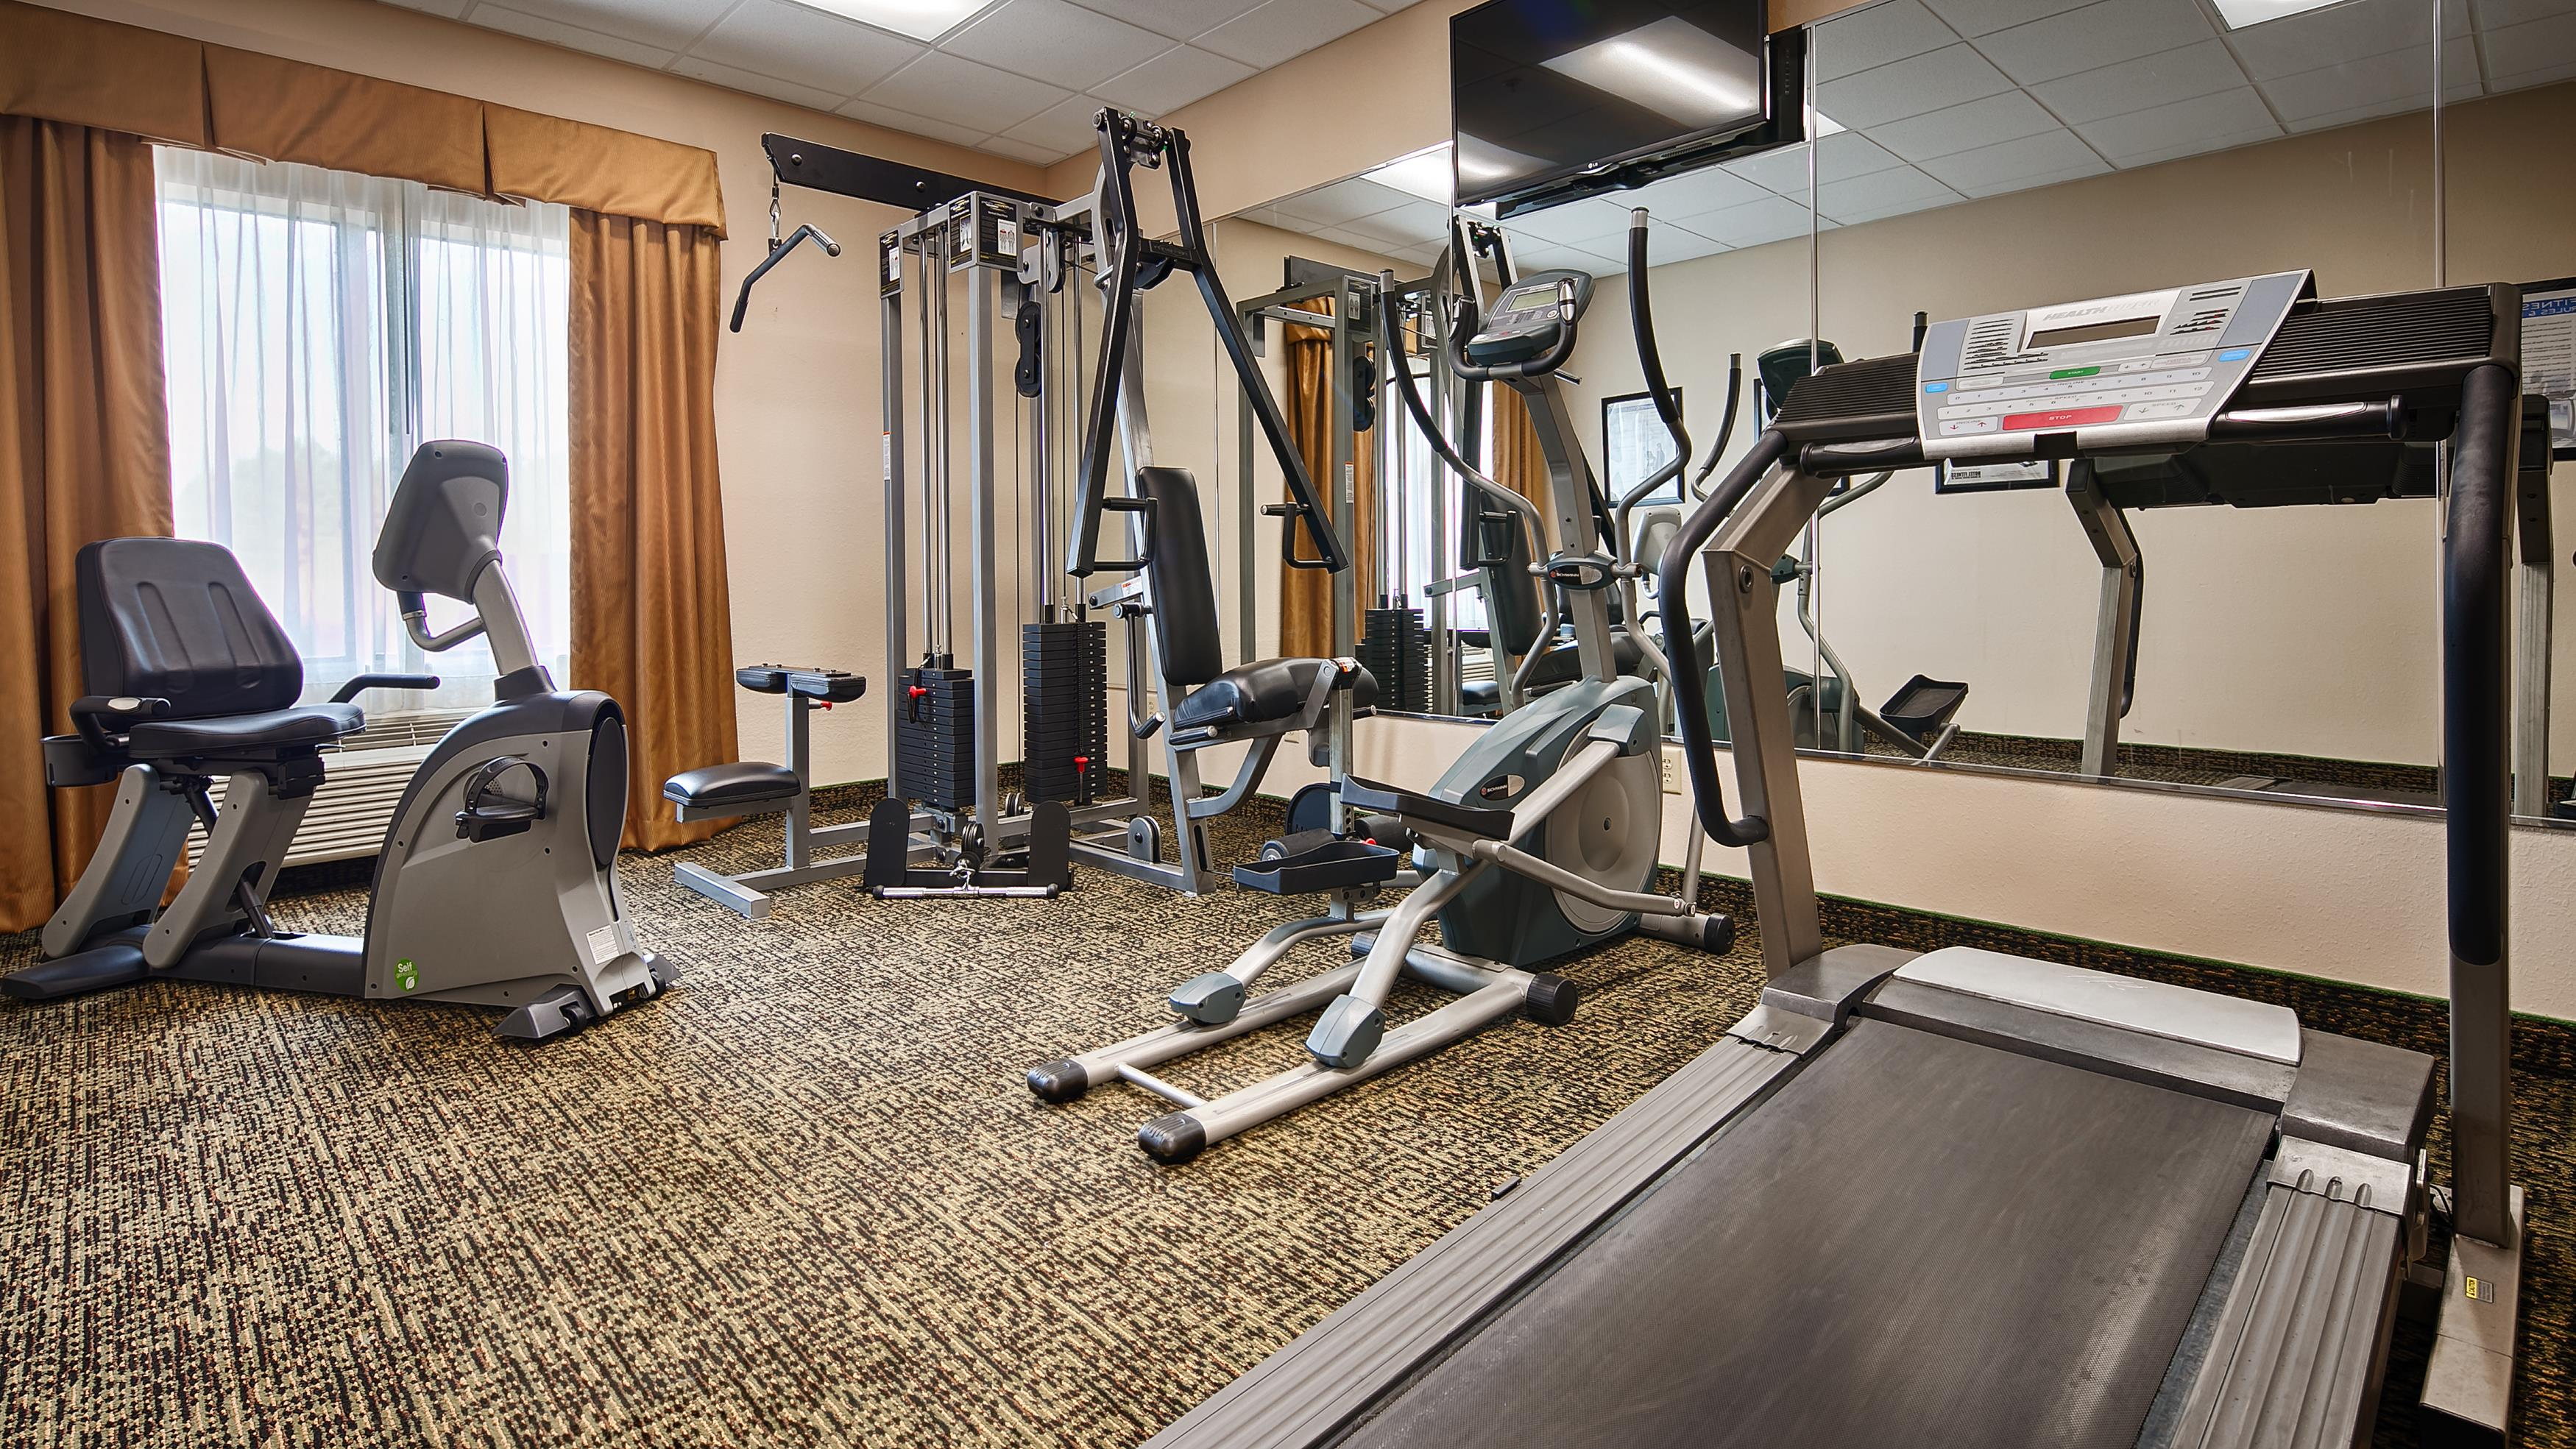 Country Inn & Suites by Radisson, Midway, FL image 1